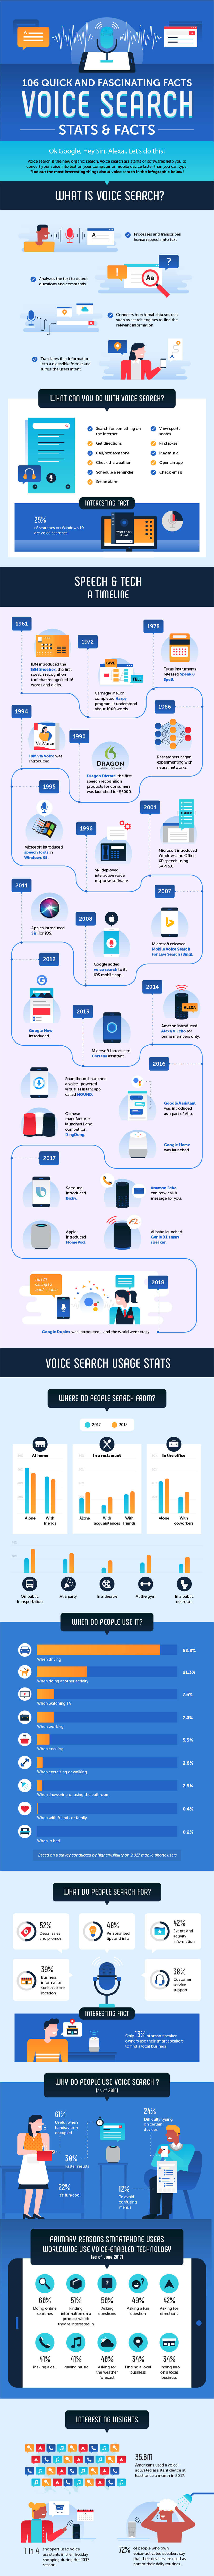 Evolution of voice search